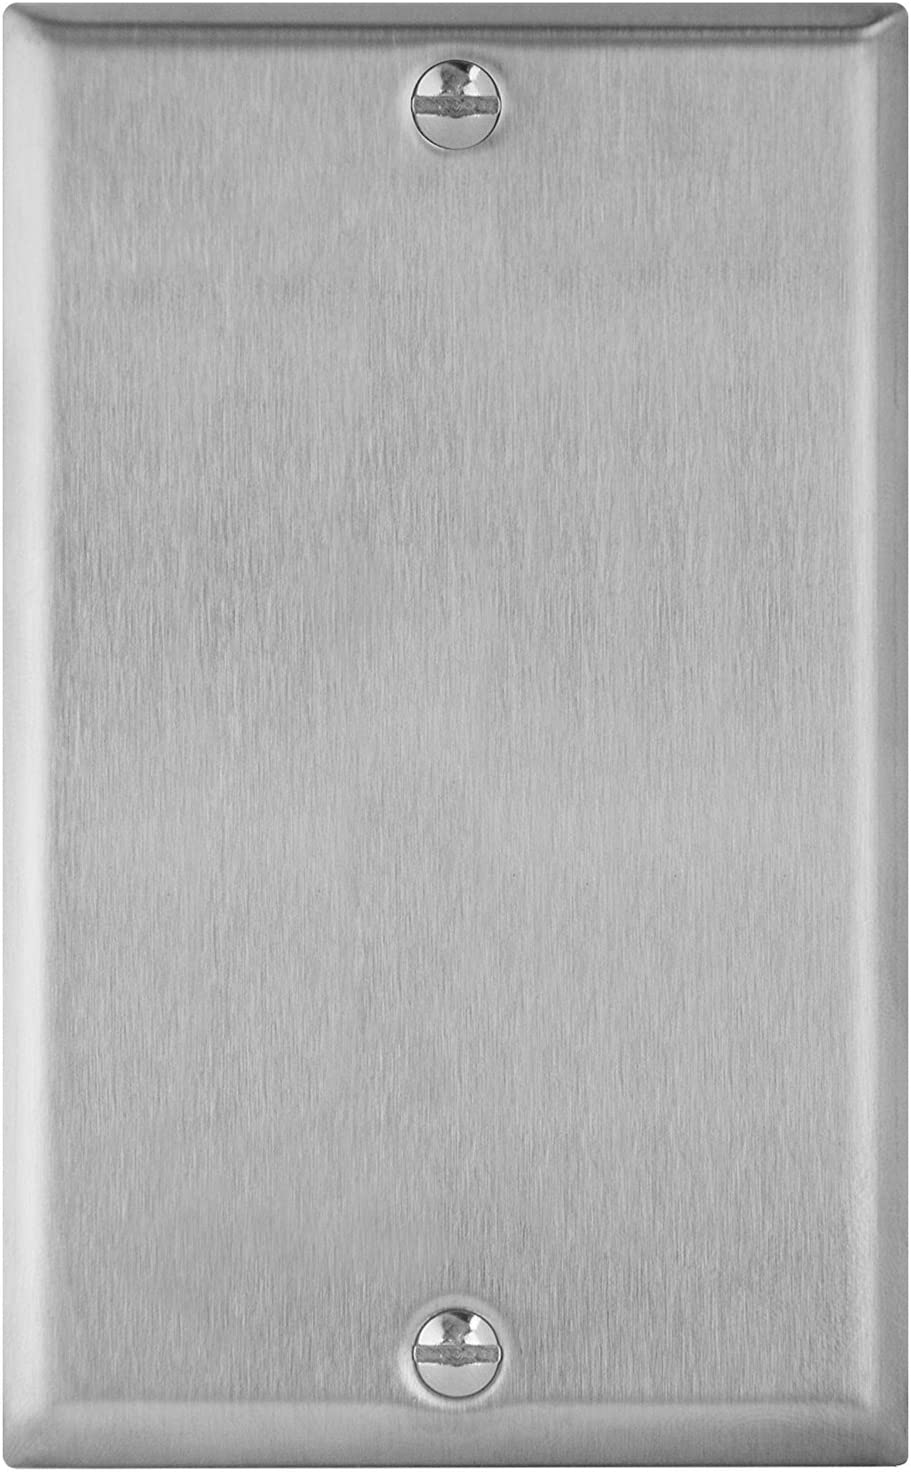 """ENERLITES Blank Device Metal Wall Plate, Corrosion Resistant, Size 1-Gang 4.50"""" x 2.76"""", UL Listed, 7701, 430 Stainless Steel, Silver"""